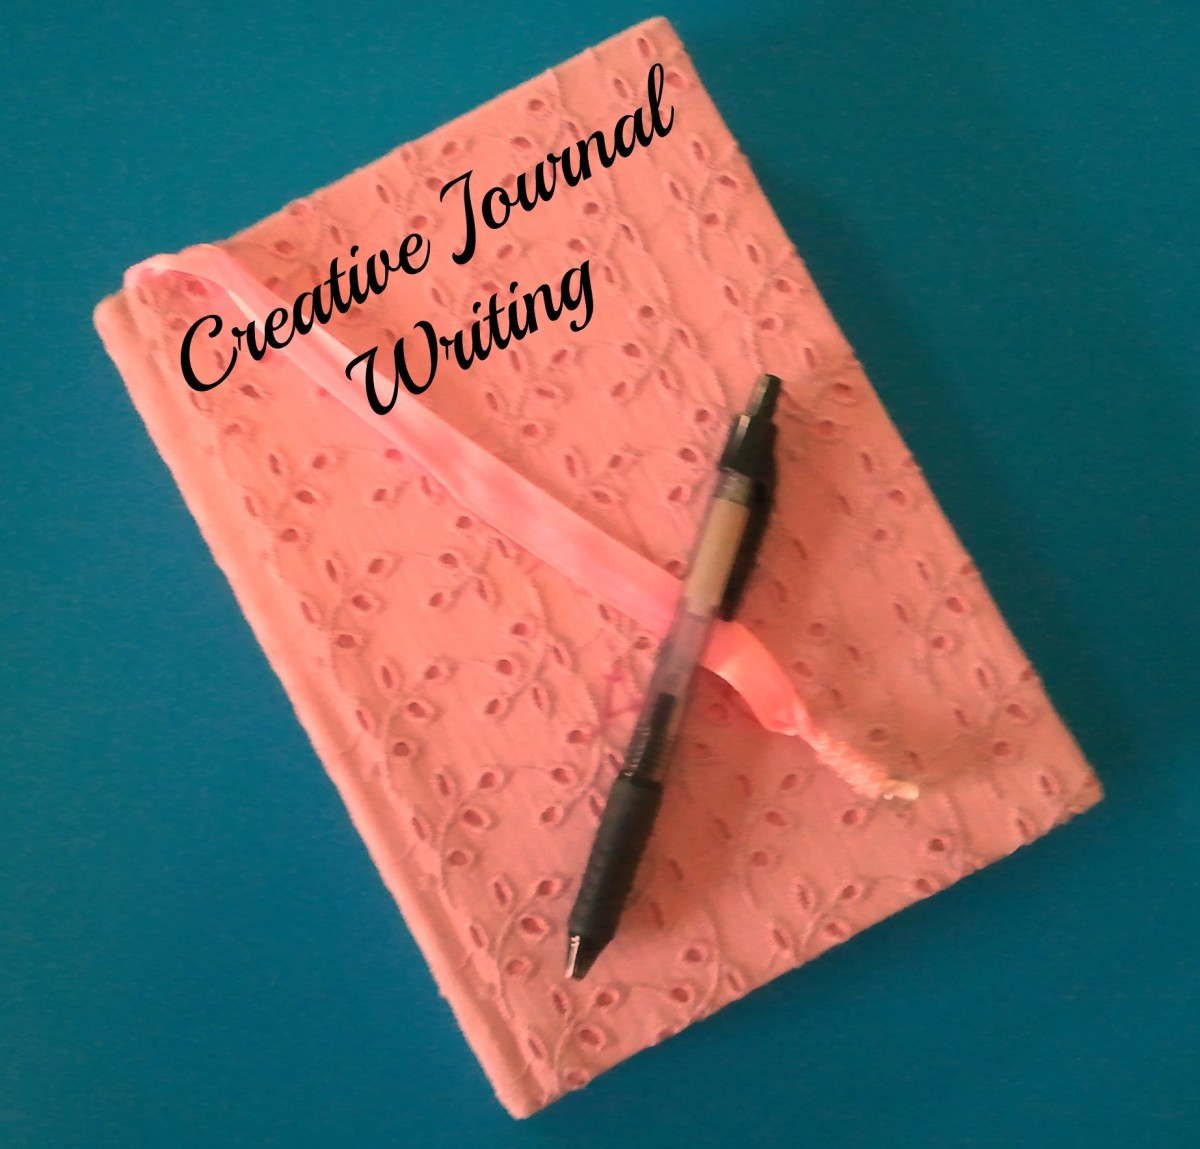 6 Easy Creative Journal Writing Prompts